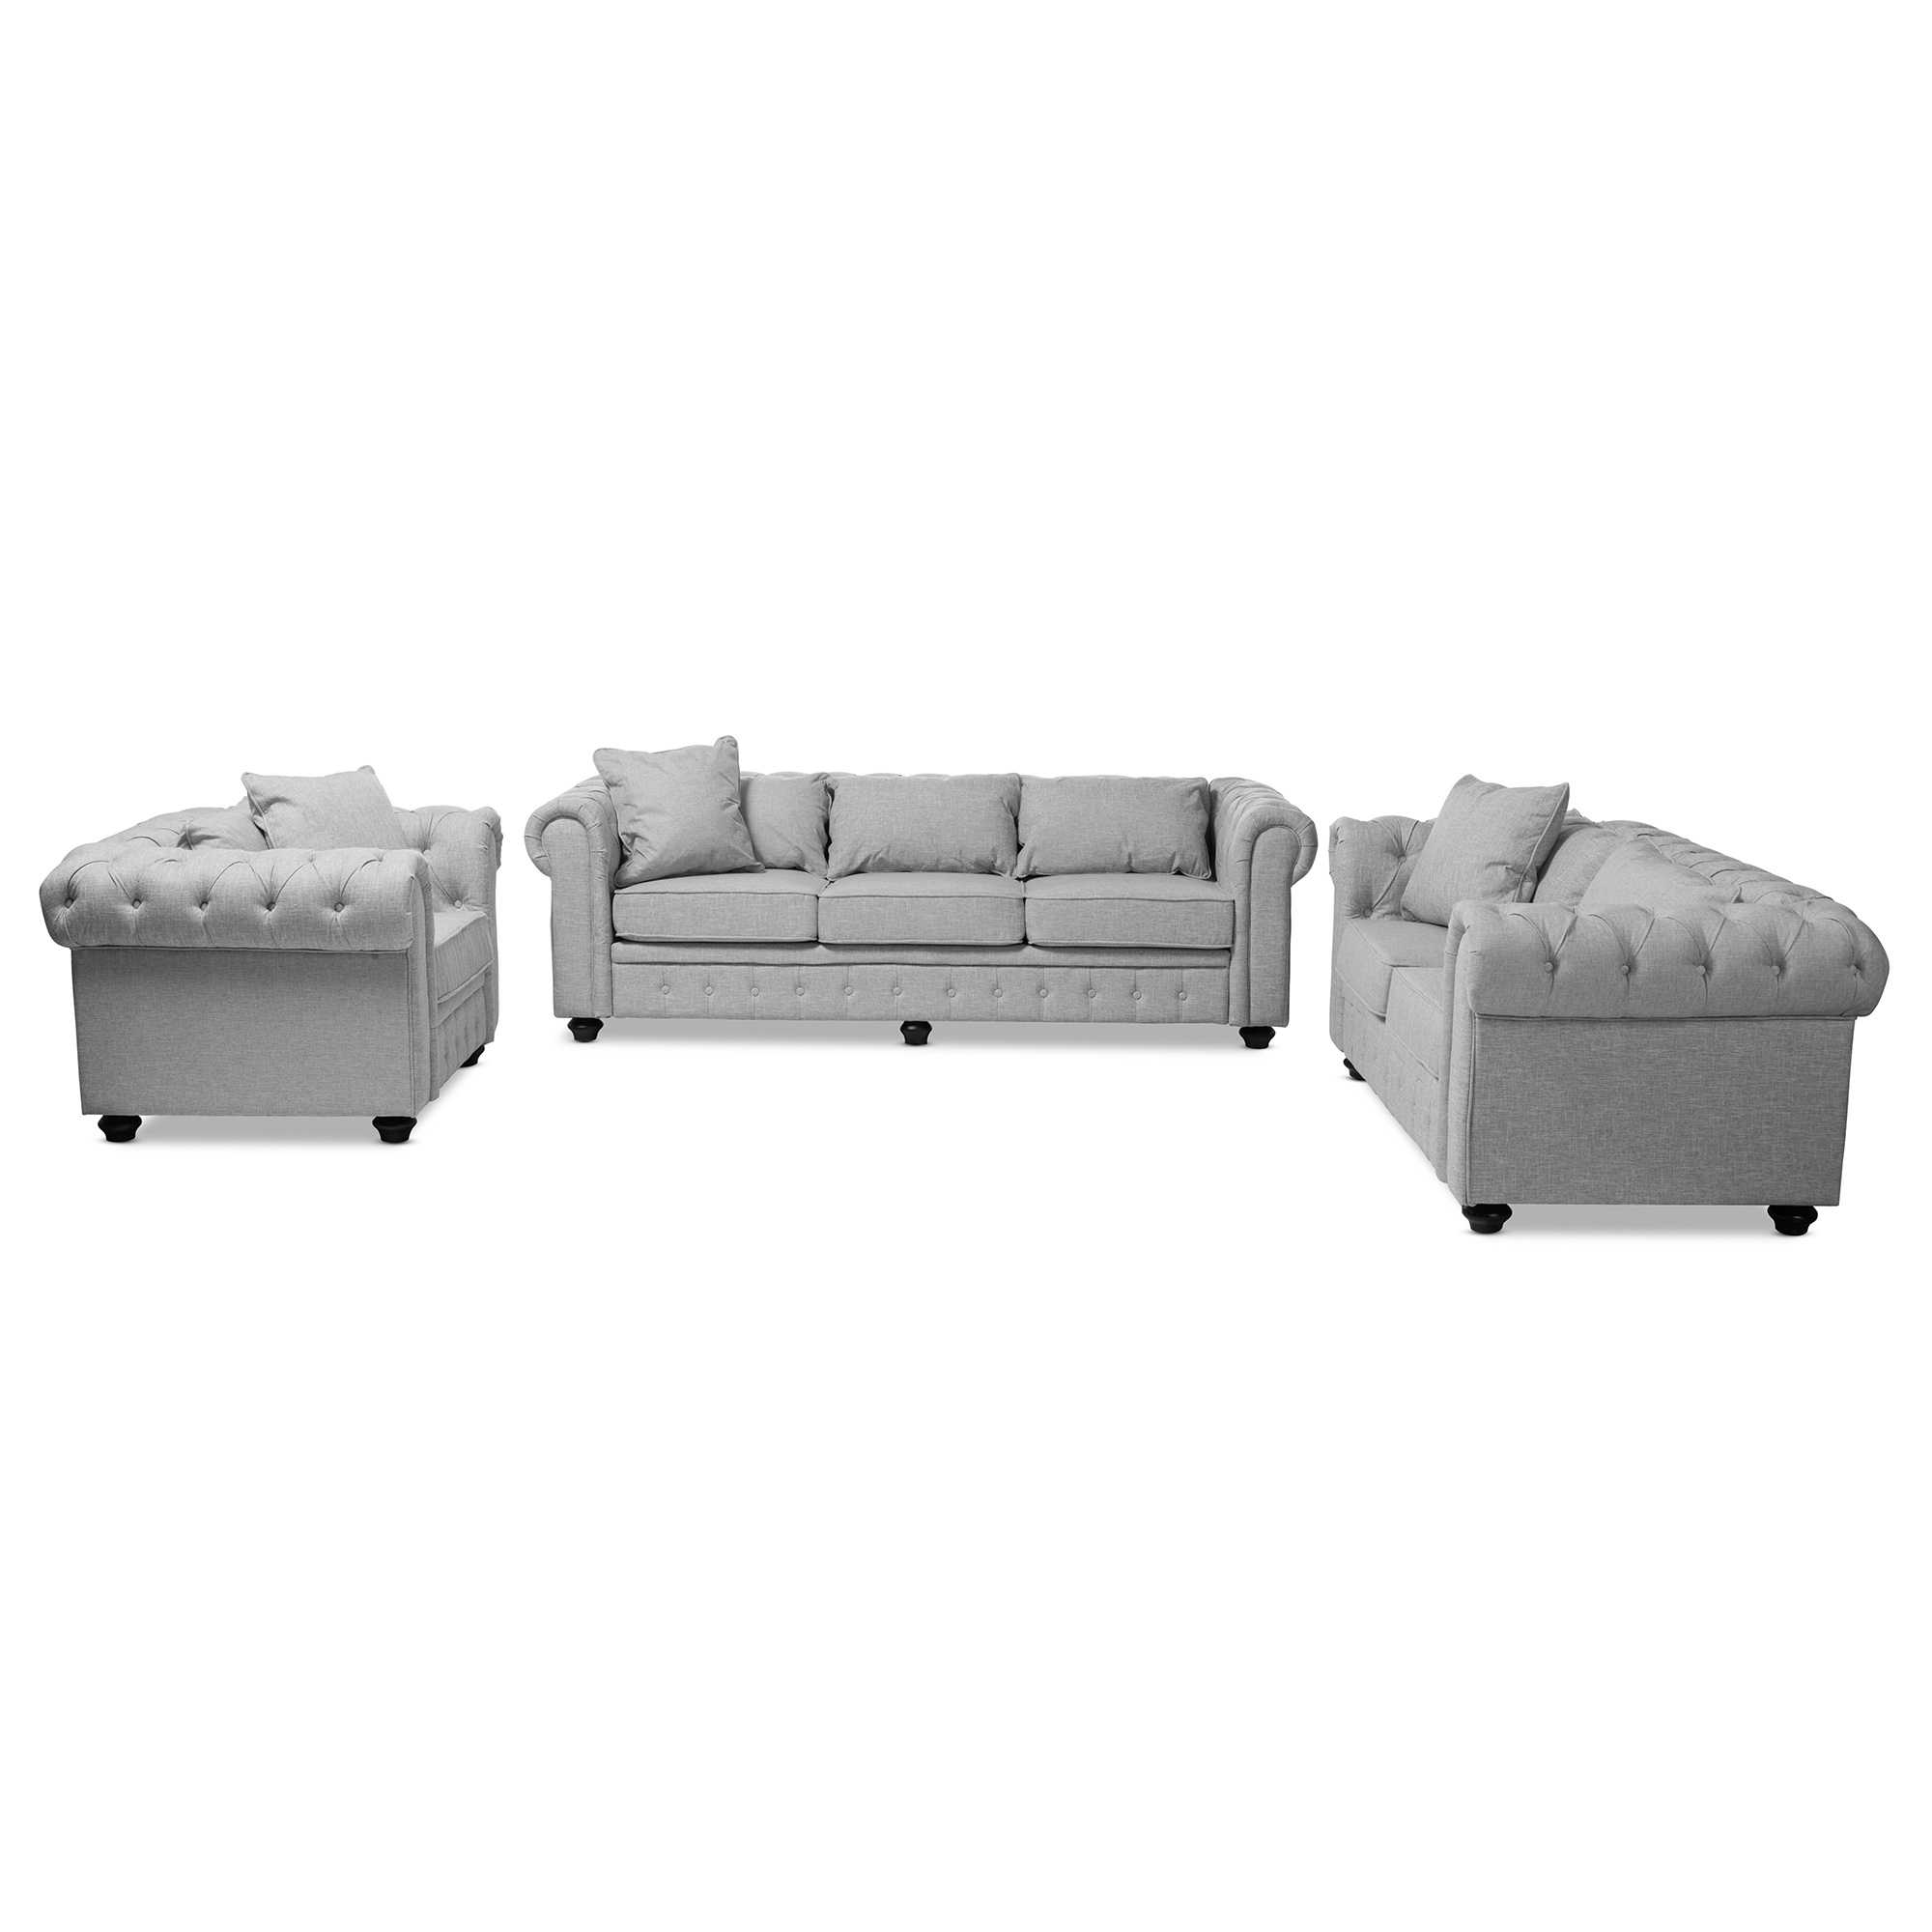 Baxton Studio Alaise Modern Classic Grey Linen Tufted Scroll Arm  Chesterfield 3 Piece Living Room Set